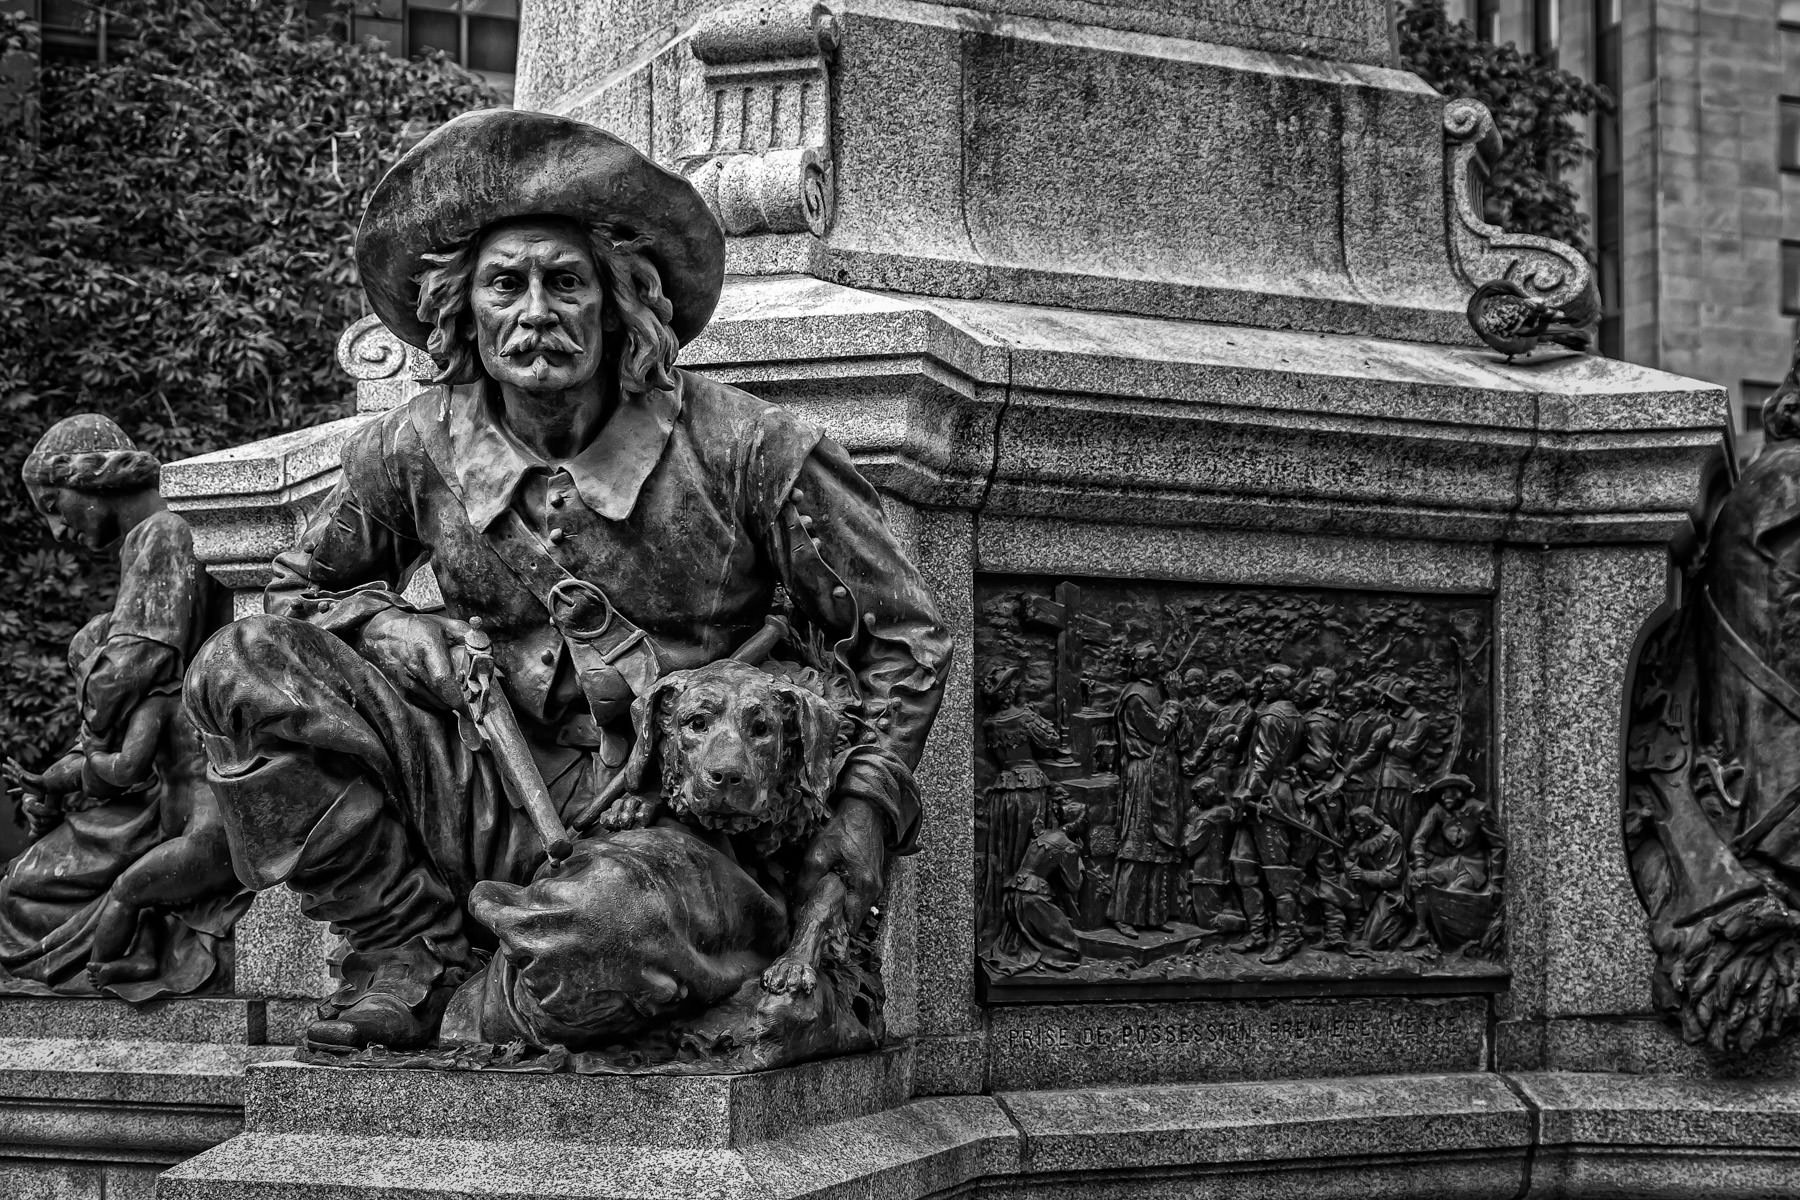 Detail from the base of the monument to Paul de Chomedey, defender of the city from the Iroquois, in Montréal's Place d'Armes.